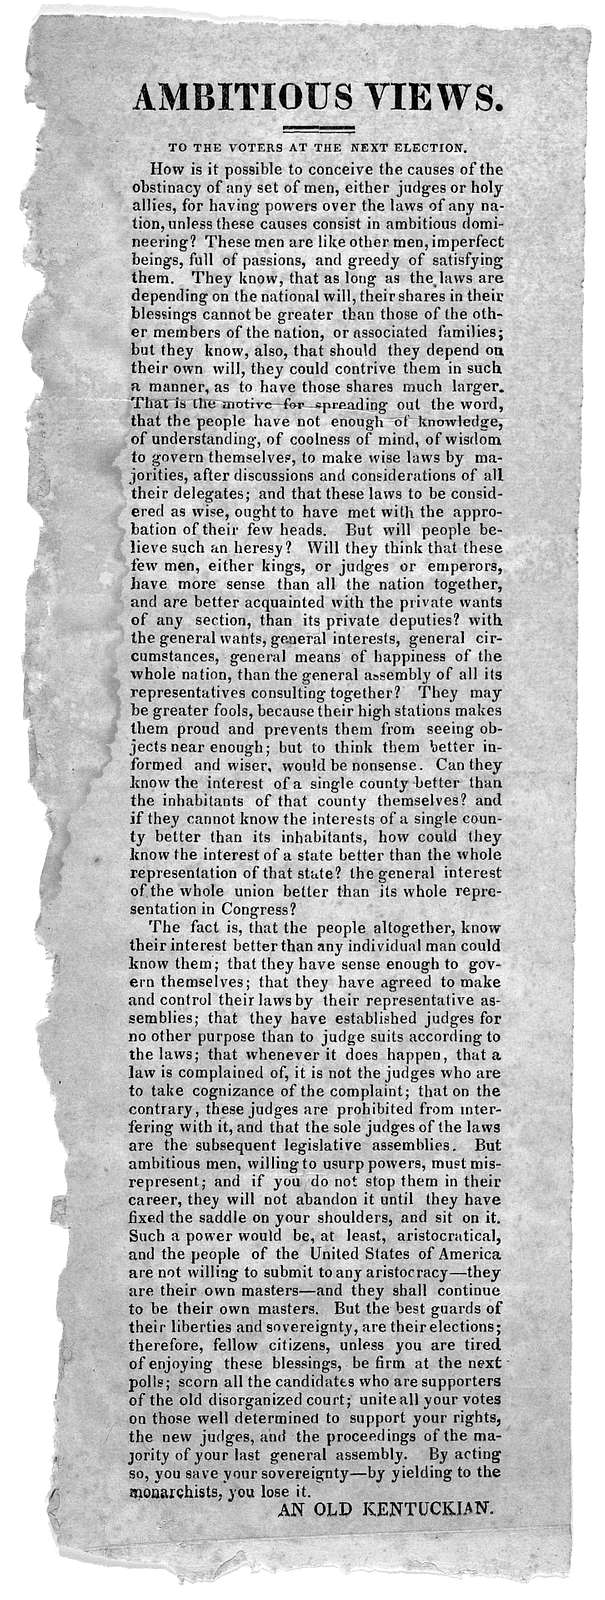 Ambitious views. To the voters at the next election ... An old Kentuckian. [Kentucky 1829?].